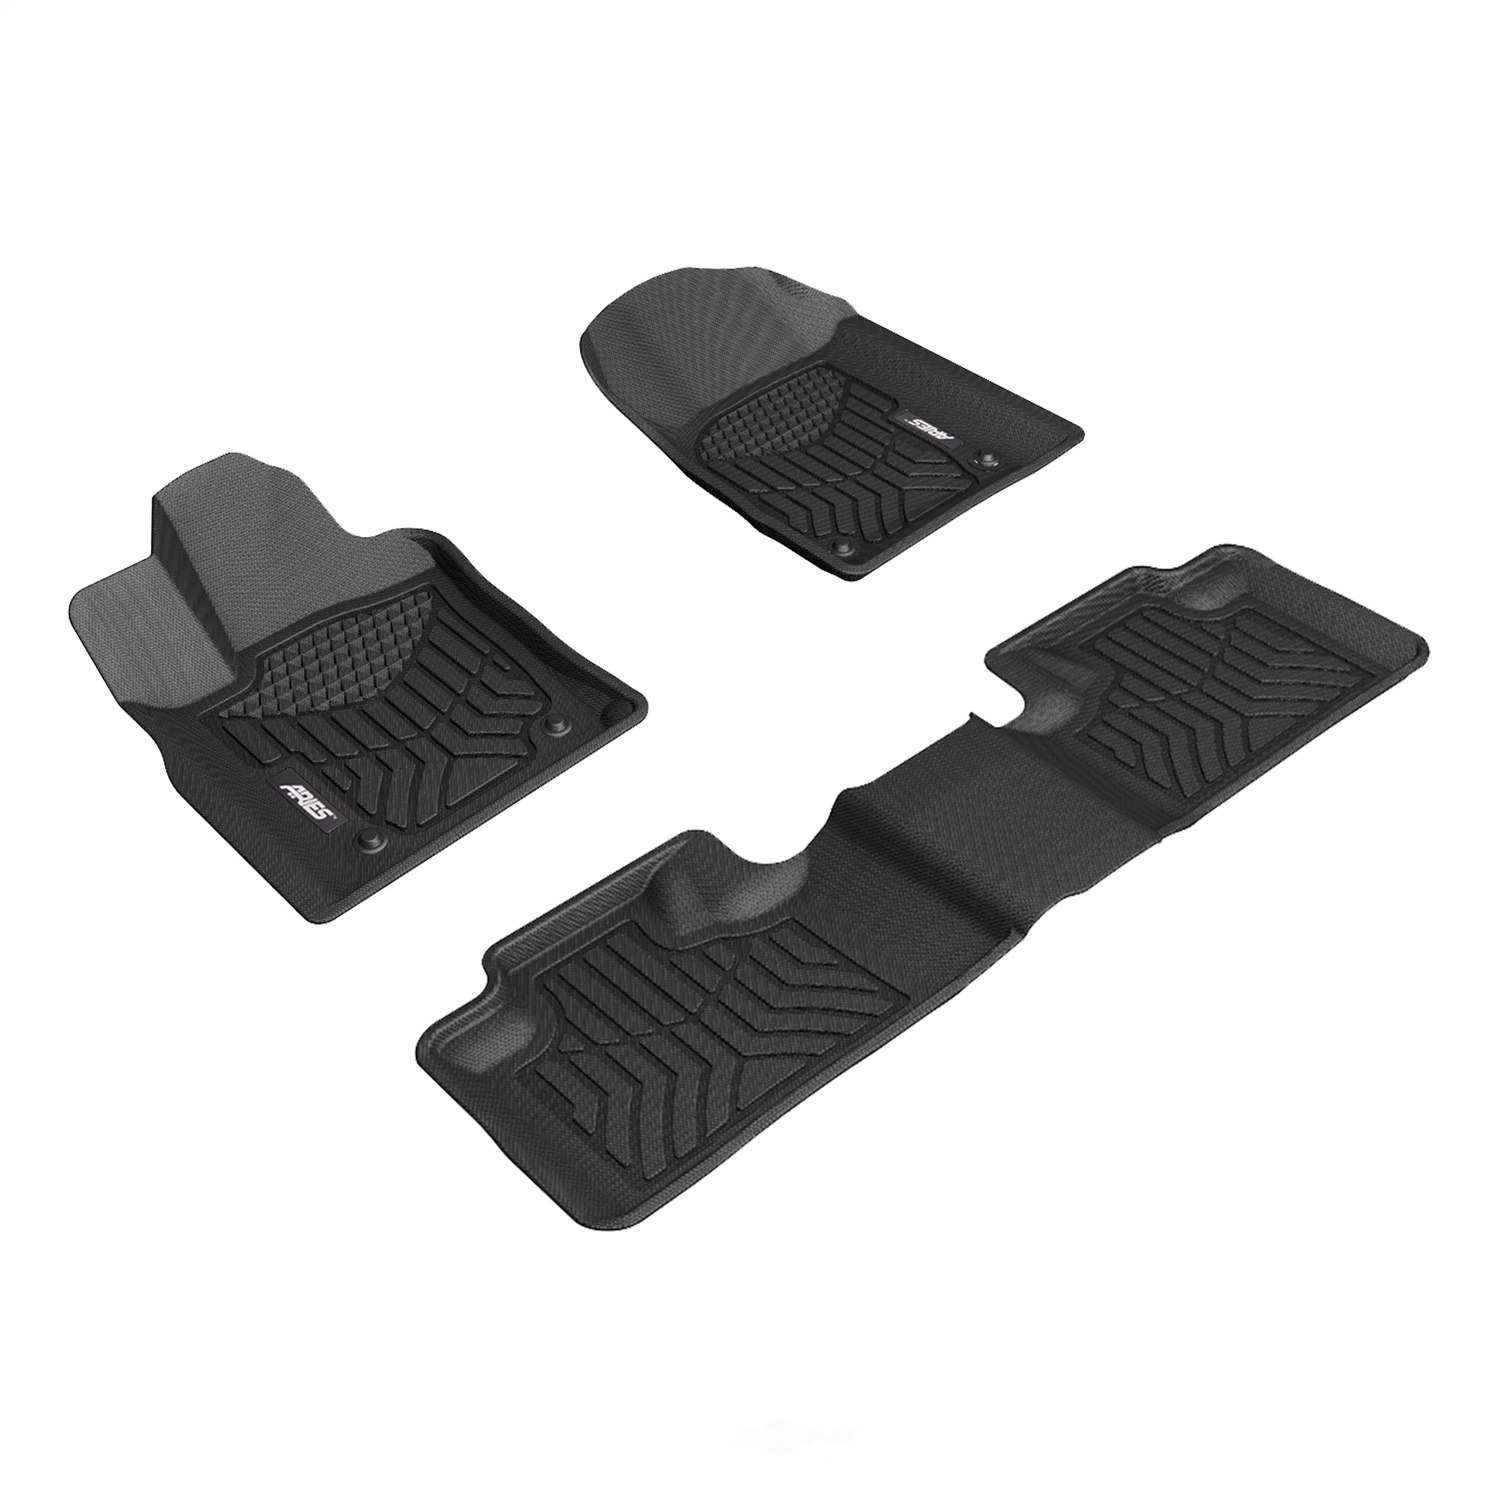 ARIES - Styleguard XD Floor Liner (Front and Rear) - AR2 2808409